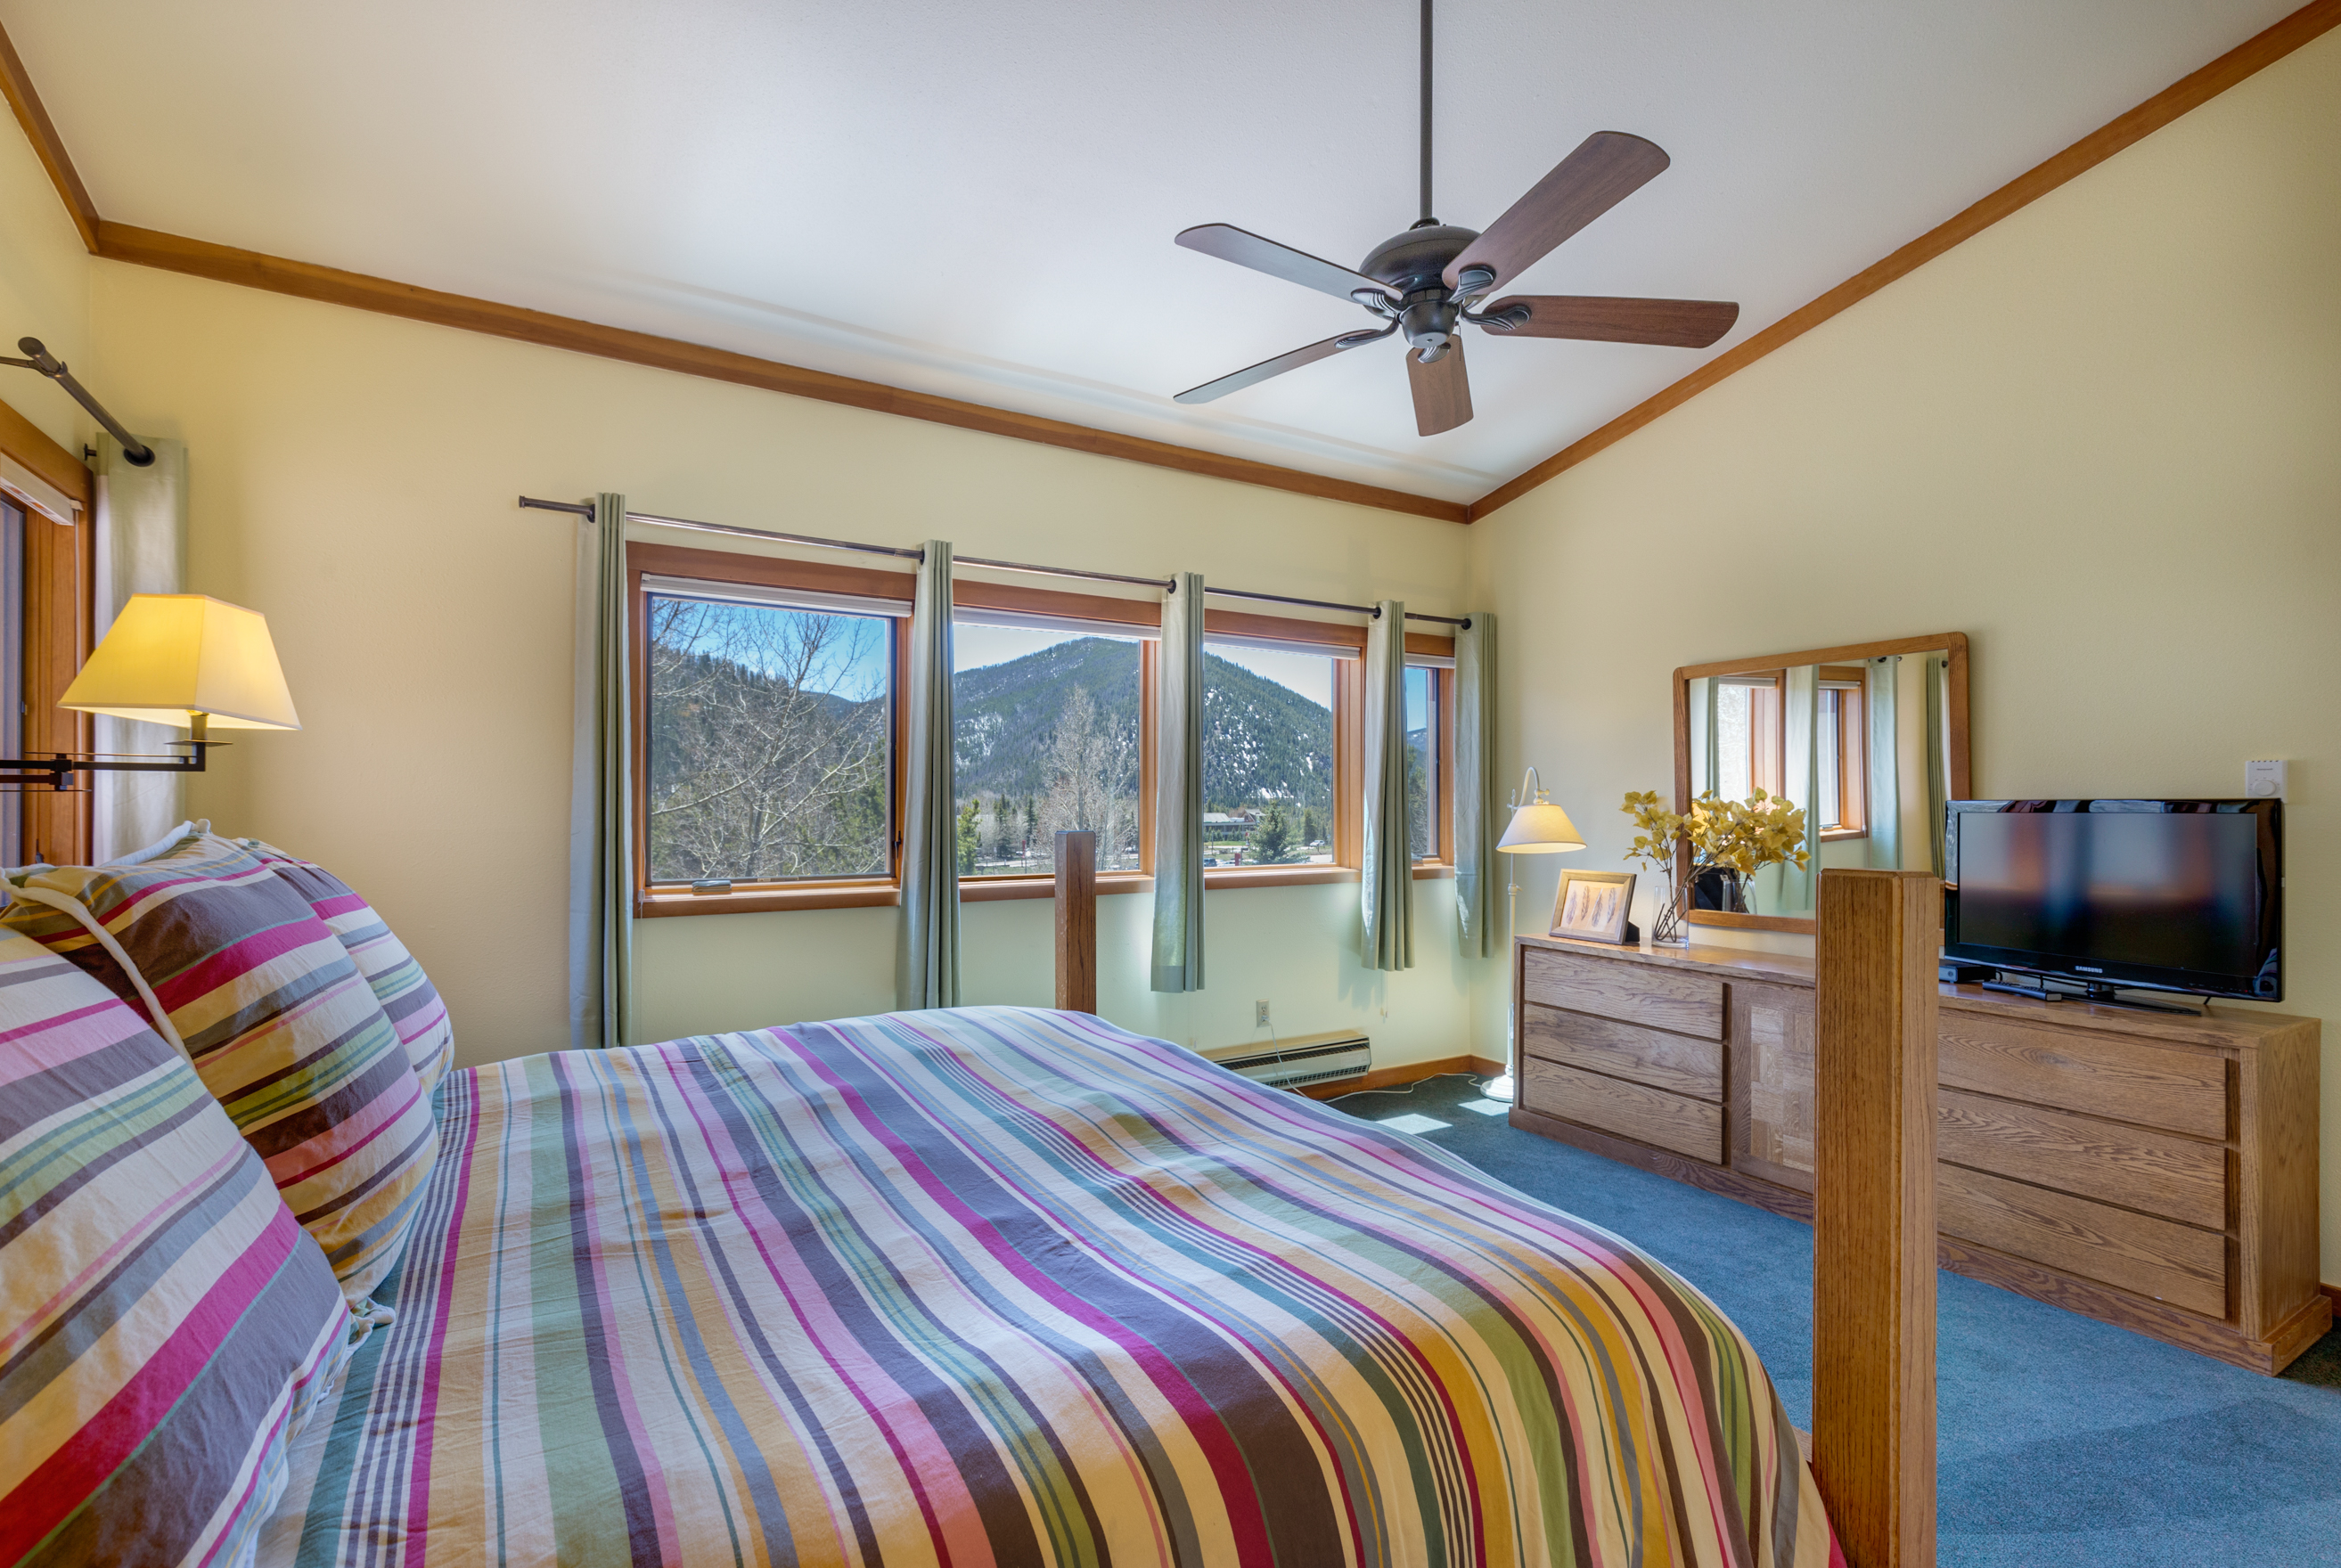 The master bedroom features a king-sized bed, a flat screen TV and an en suite bathroom.